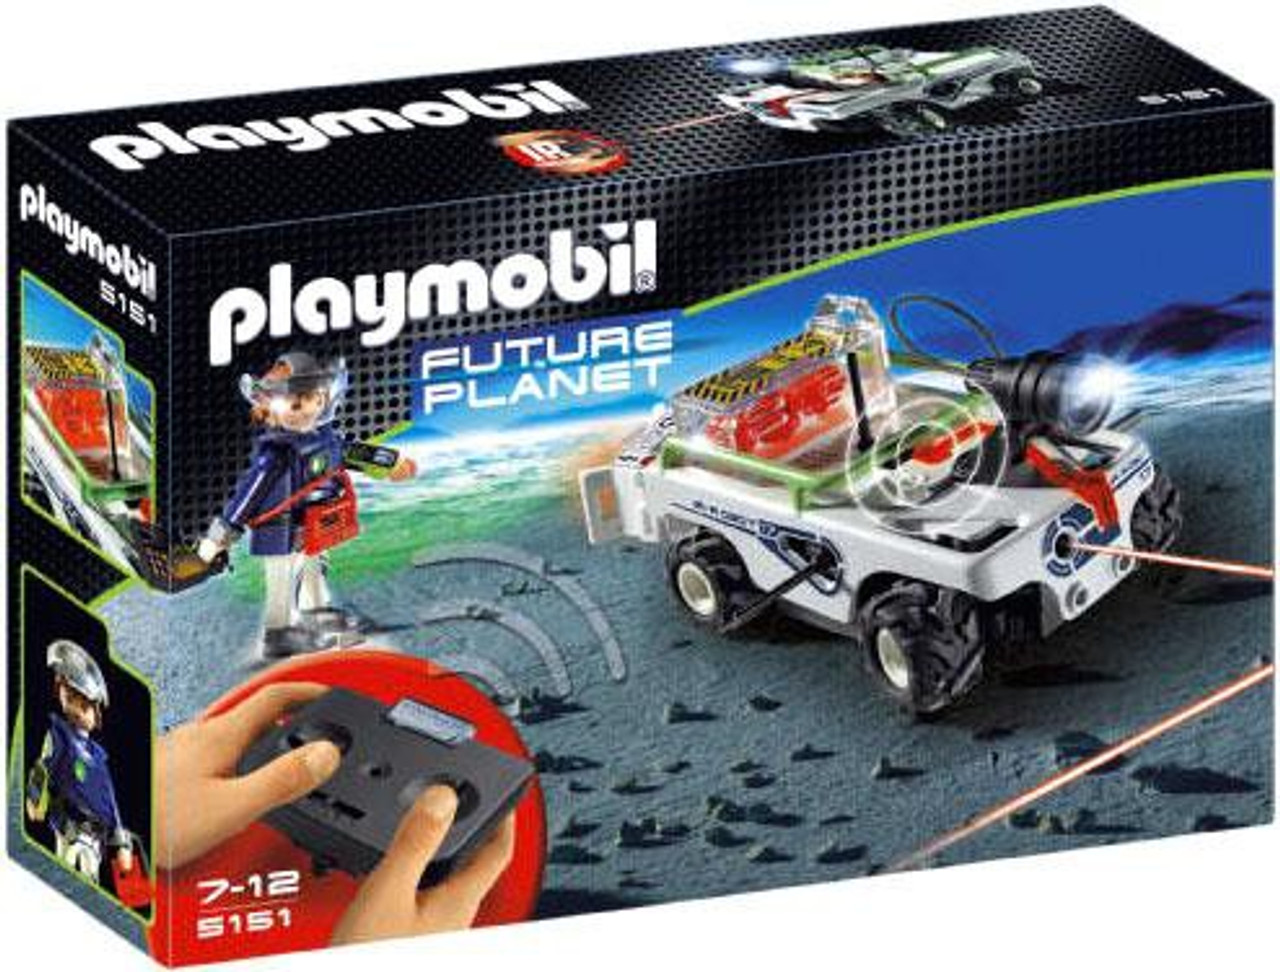 Playmobil Future Planet Explorer Quad with IR Knockout Cannon Set #5151